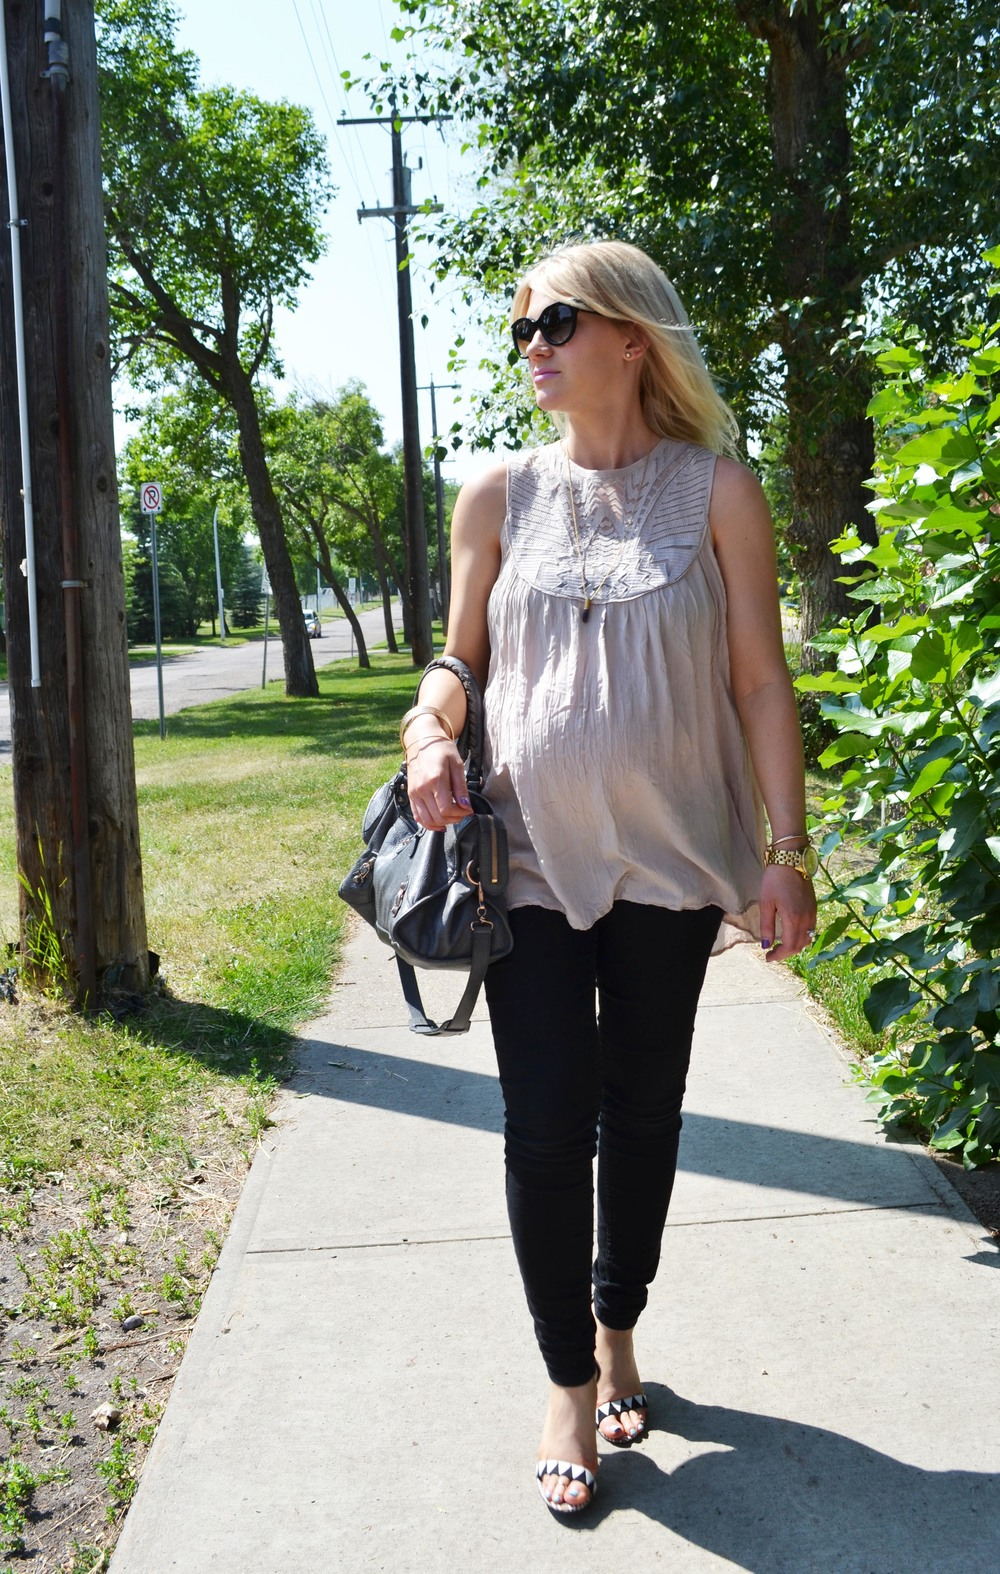 Maternity Style - 204 Park